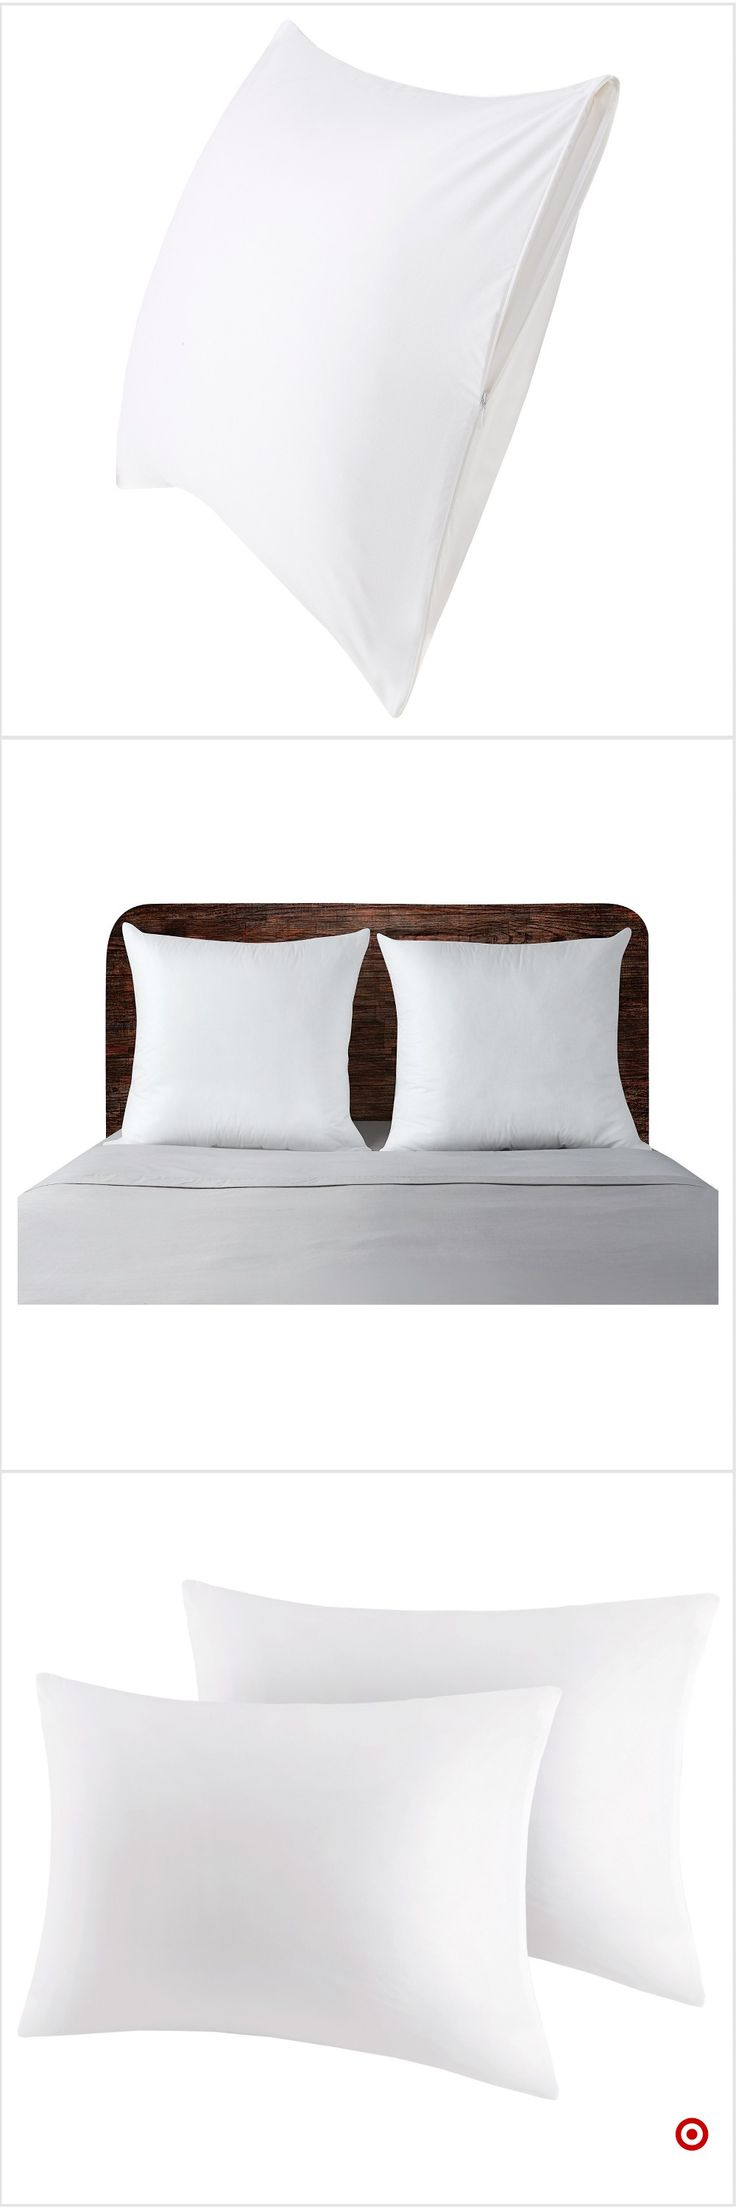 Shop Target for pillow protector you will love at great low prices. Free shipping on orders of $35+ or free same-day pick-up in store.